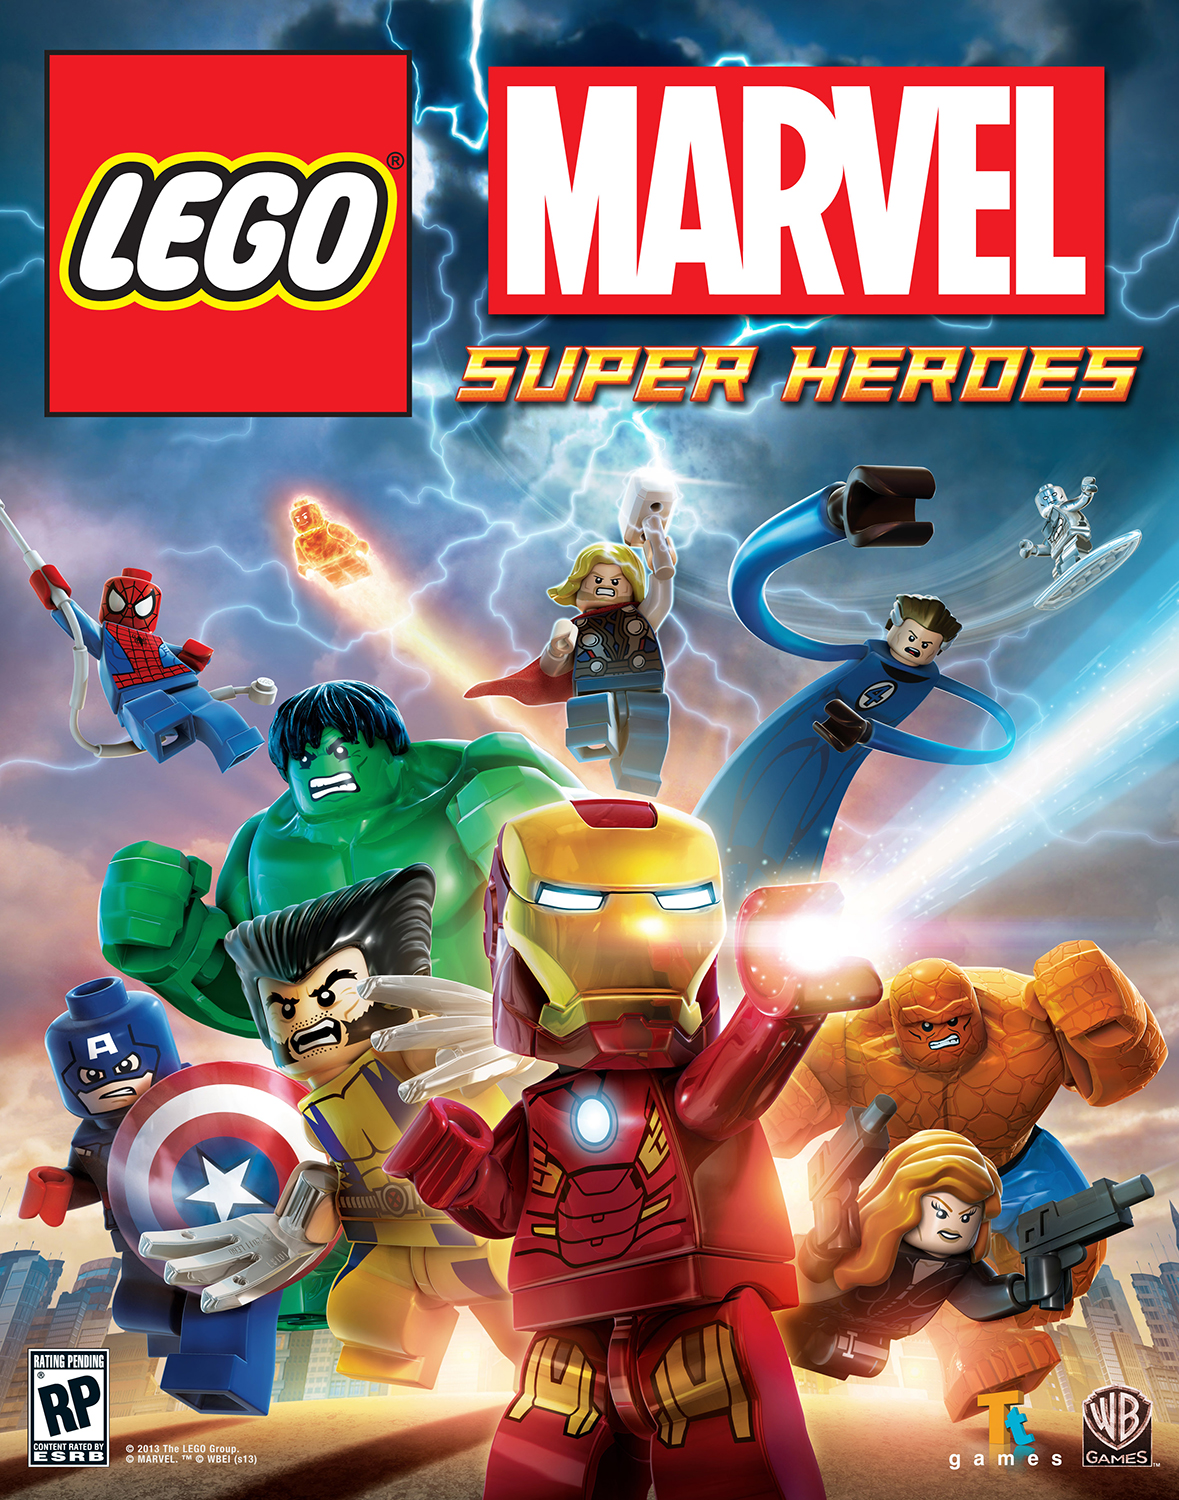 [Image: Lego+Marvel+Super+Heroes+video+game+cover.jpg]